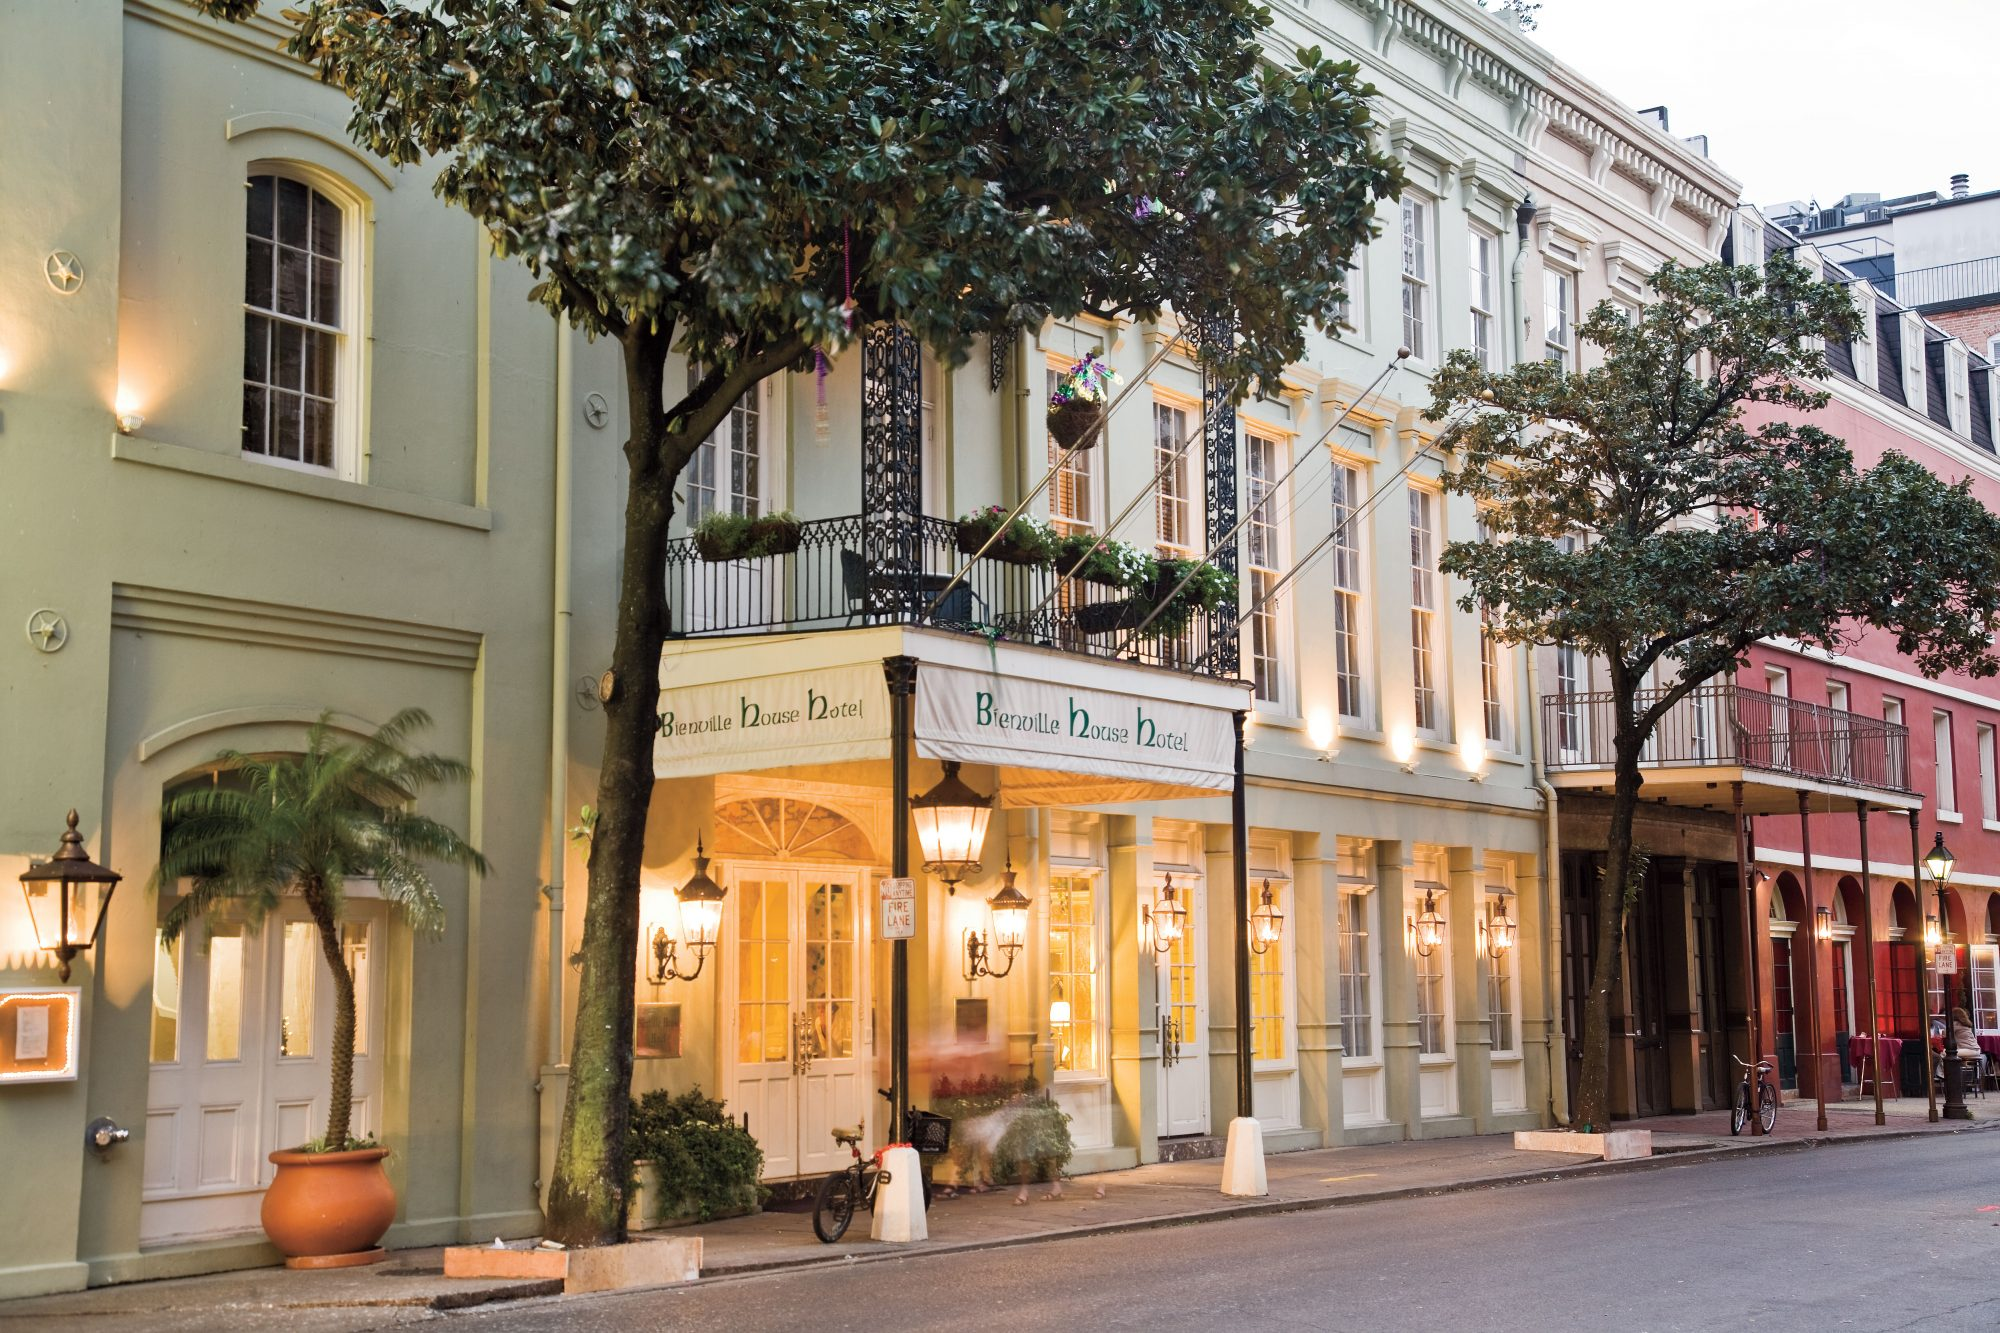 French Quarter New Orleans Hotels: Bienville House